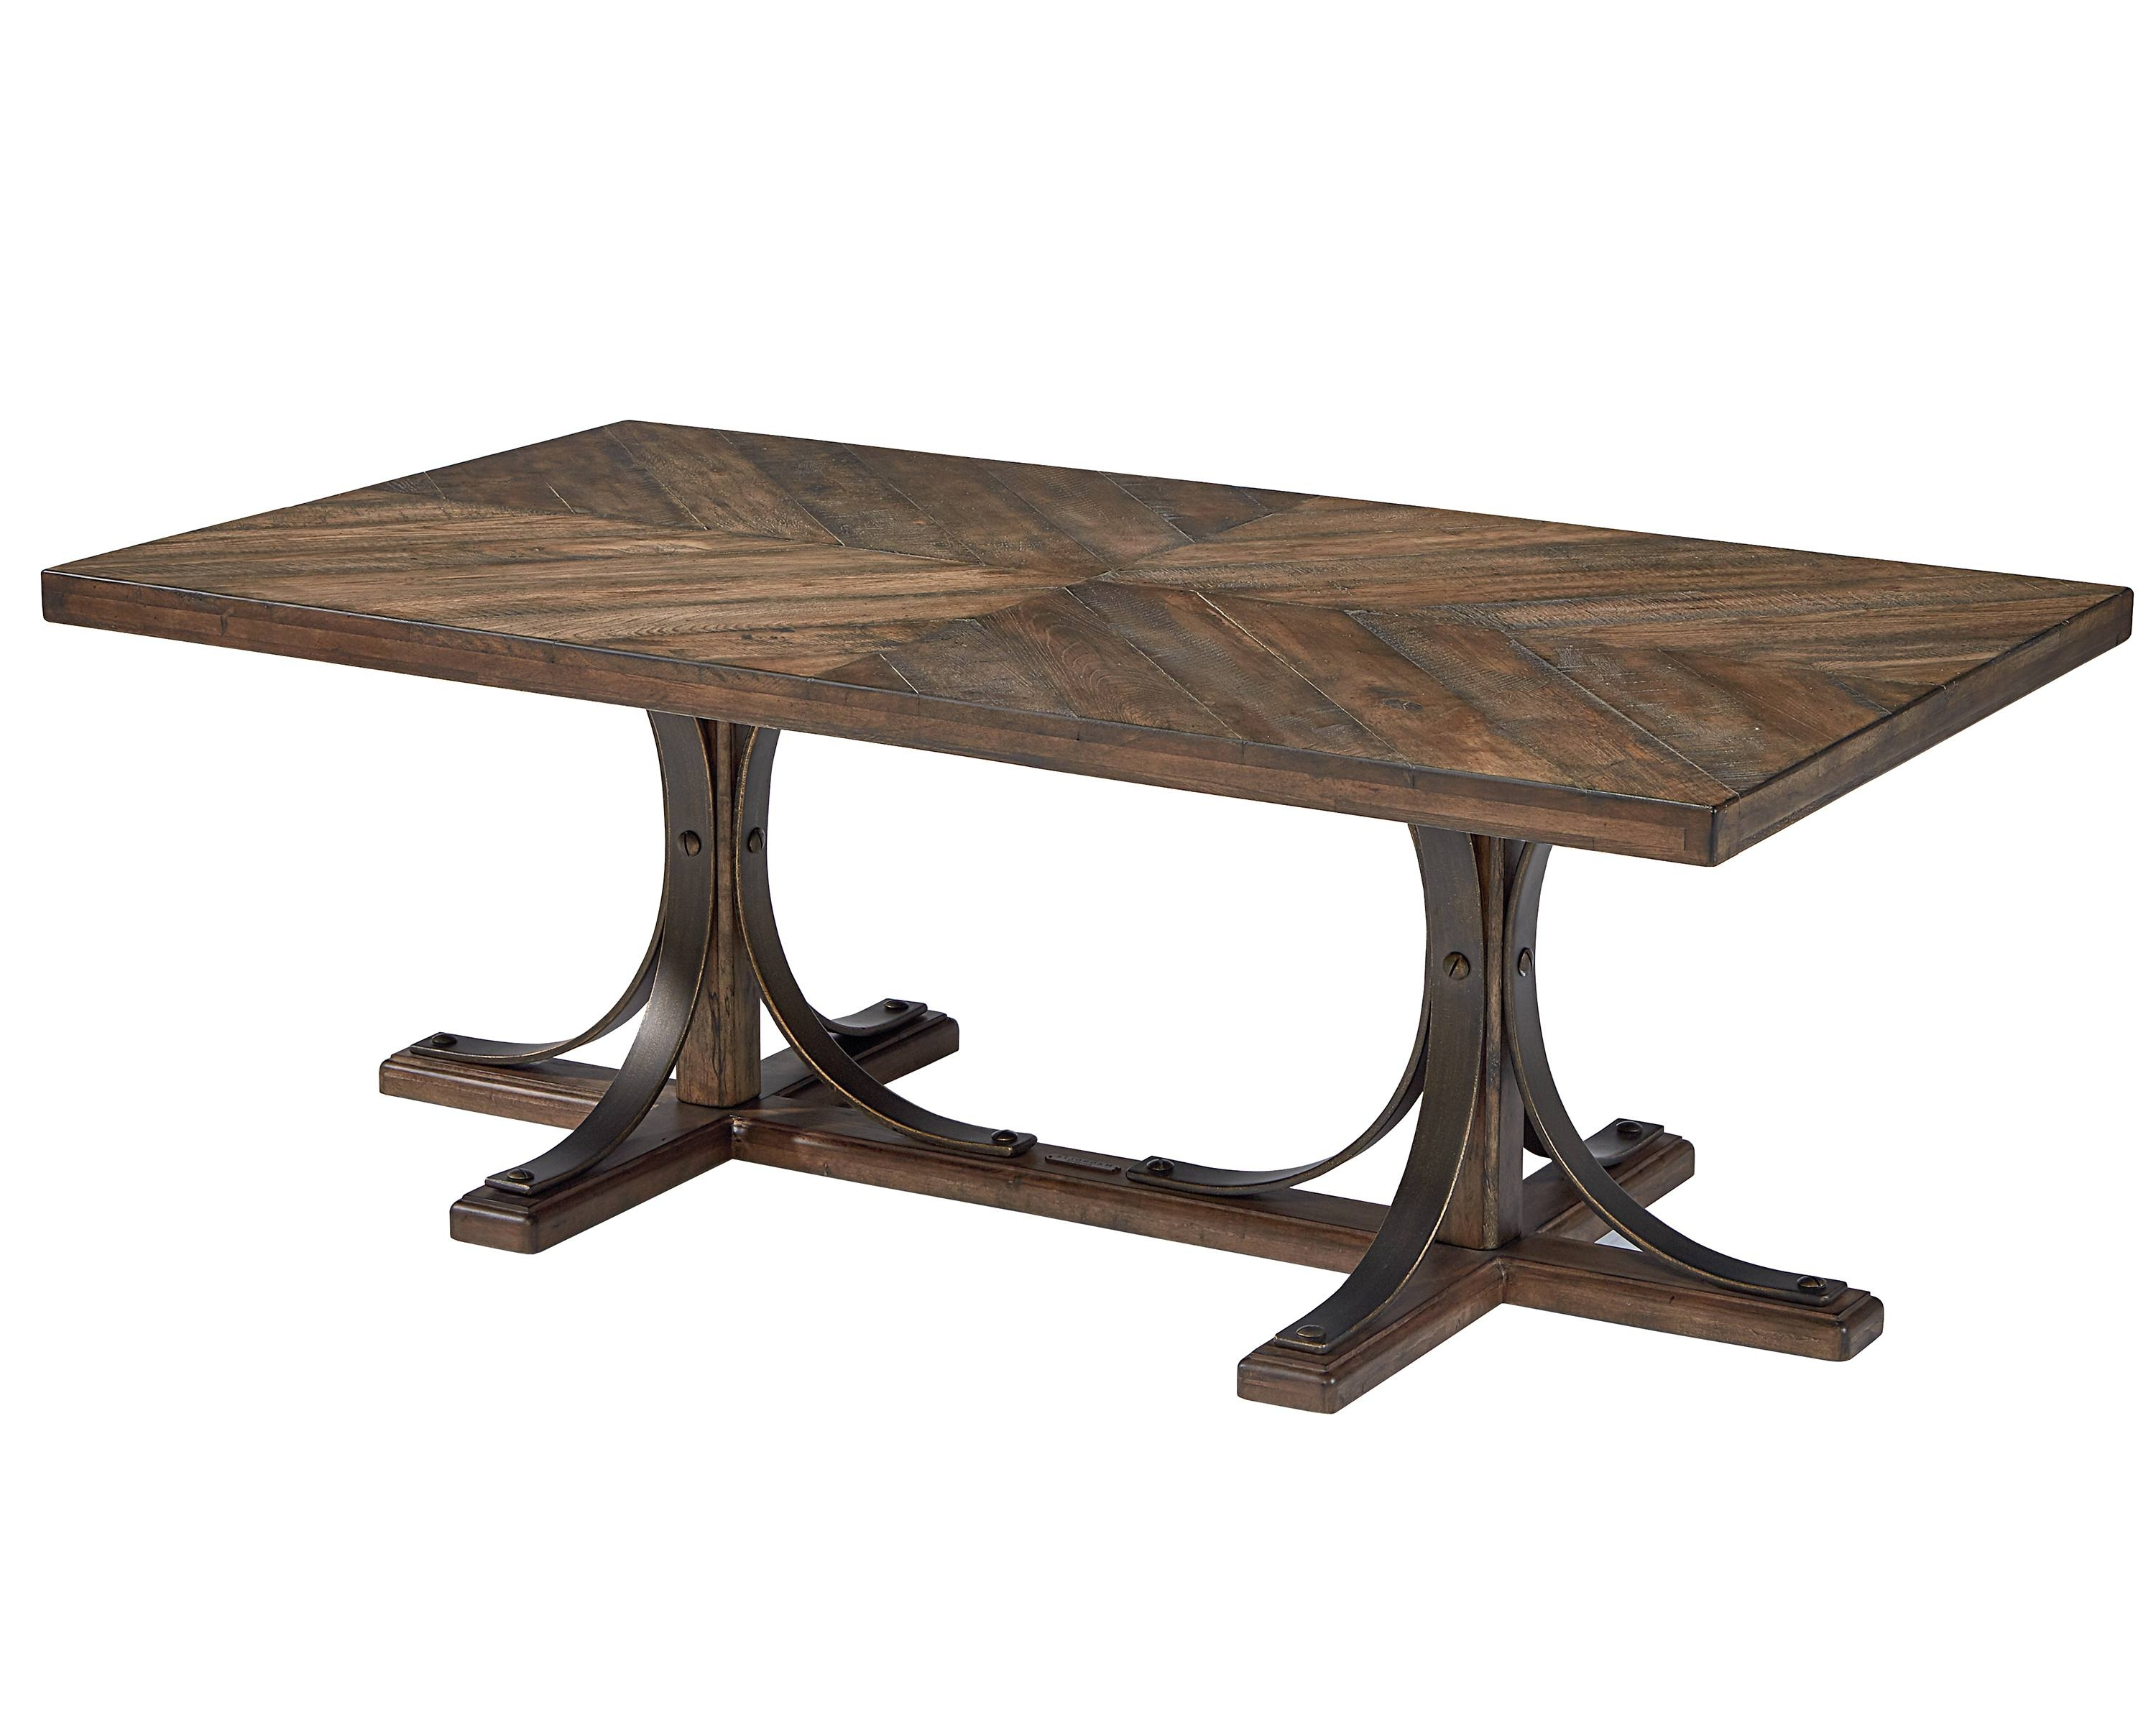 Iron Trestle Coffee Table – Magnolia Home Throughout Popular Magnolia Home Iron Trestle Cocktail Tables (View 7 of 20)